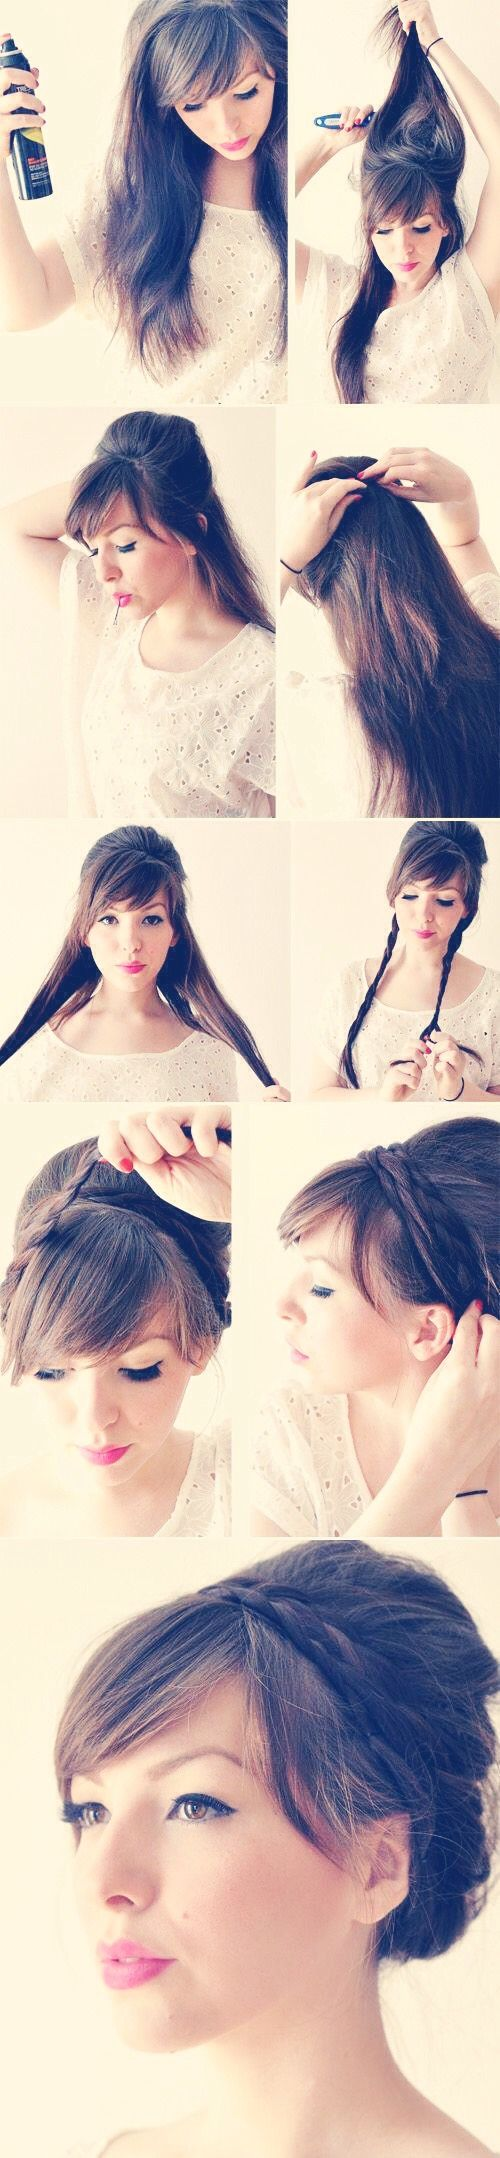 Cute Ways To Updo Your Hair In 10 Minutes!